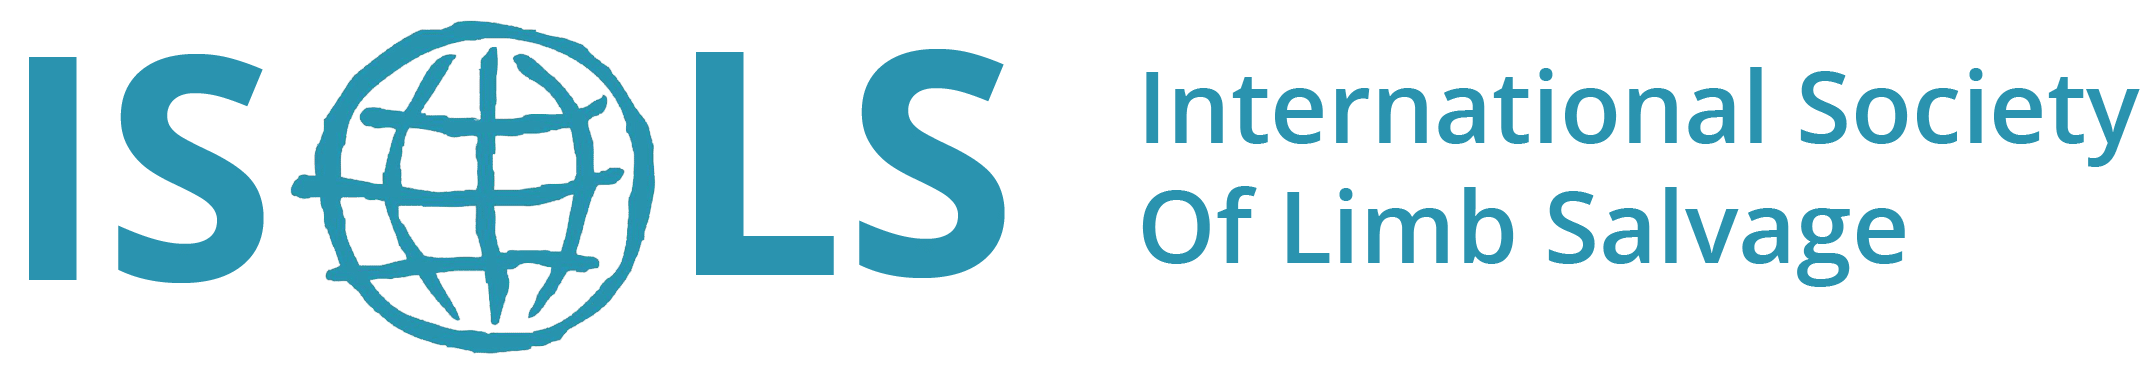 ISOLS - International Society Of Limb Salvage